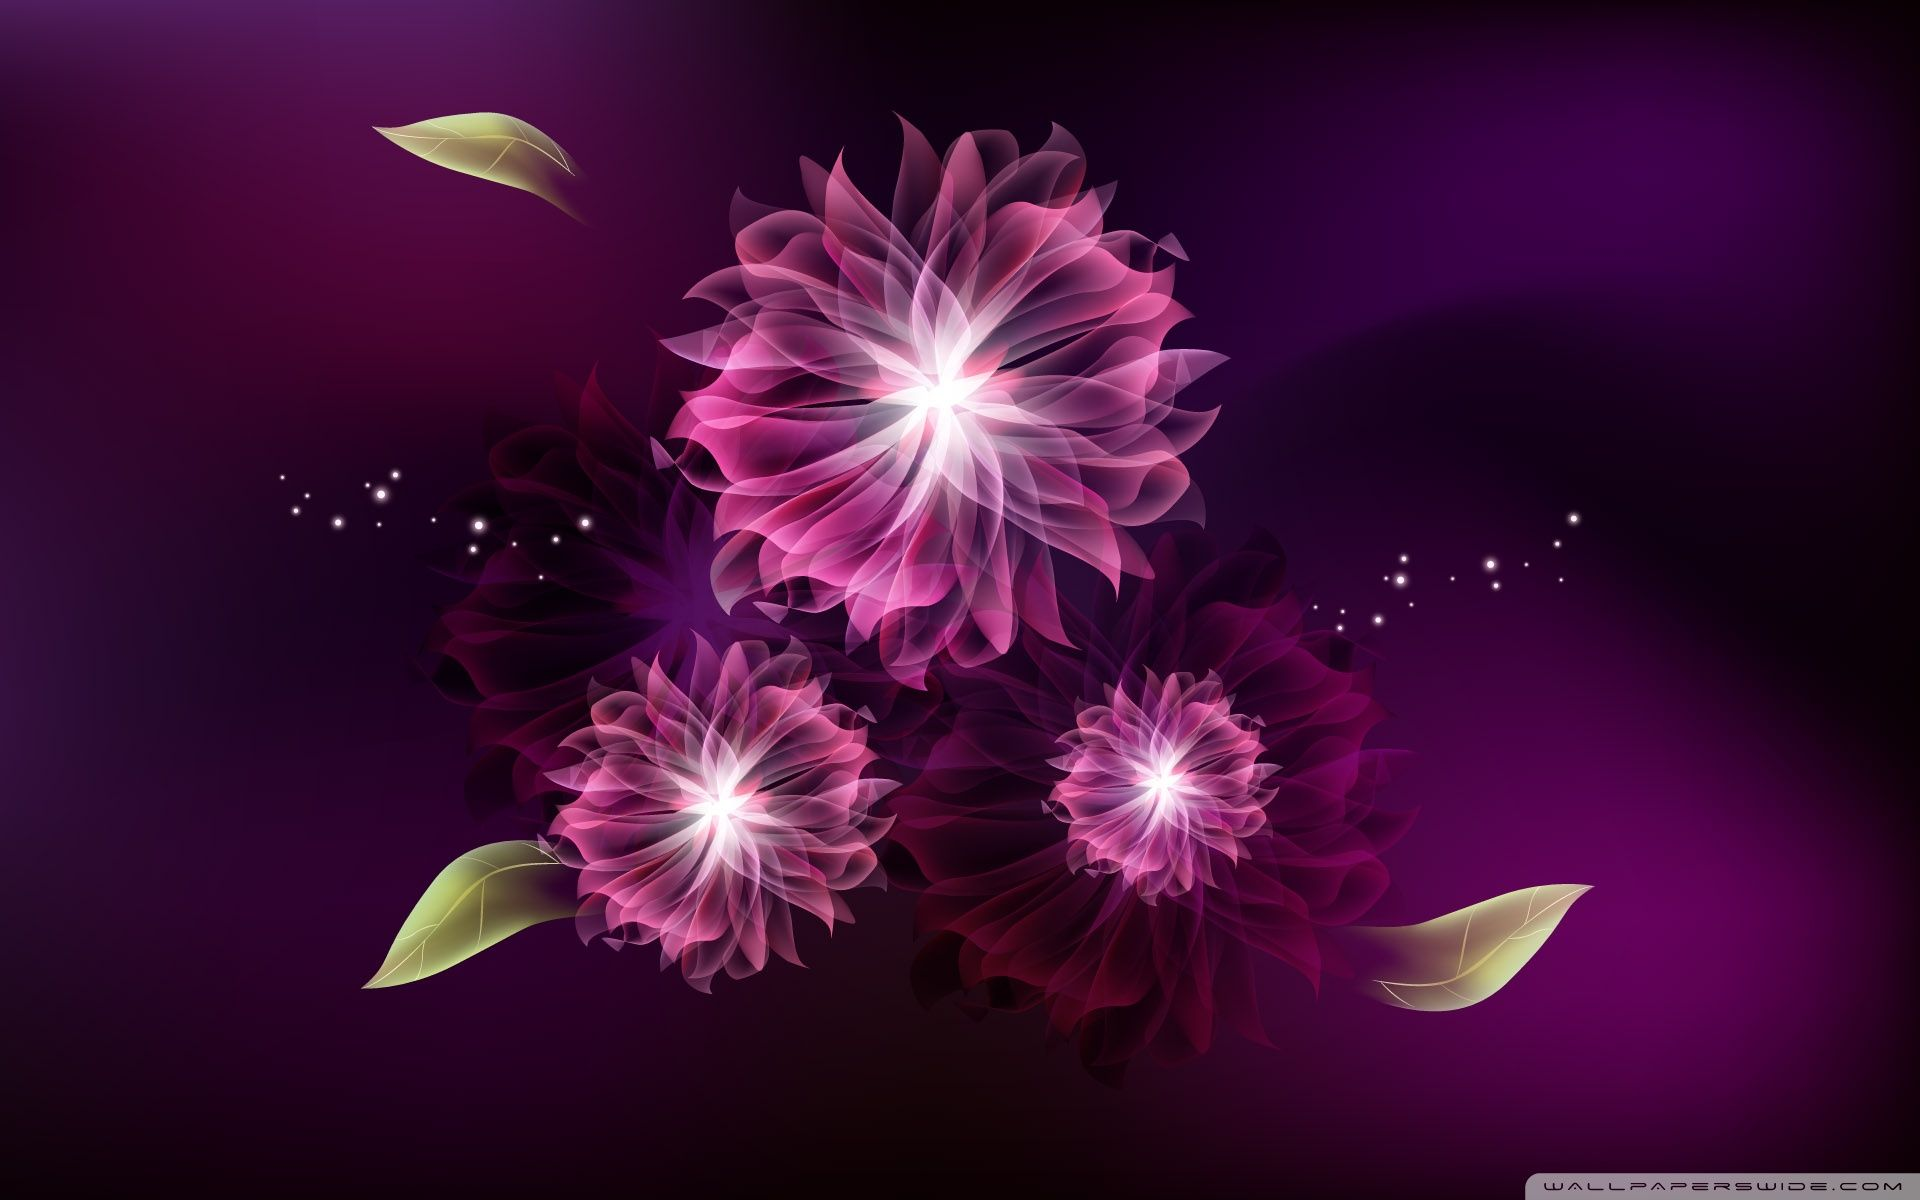 Permalink to Hd Abstract Flower Wallpaper